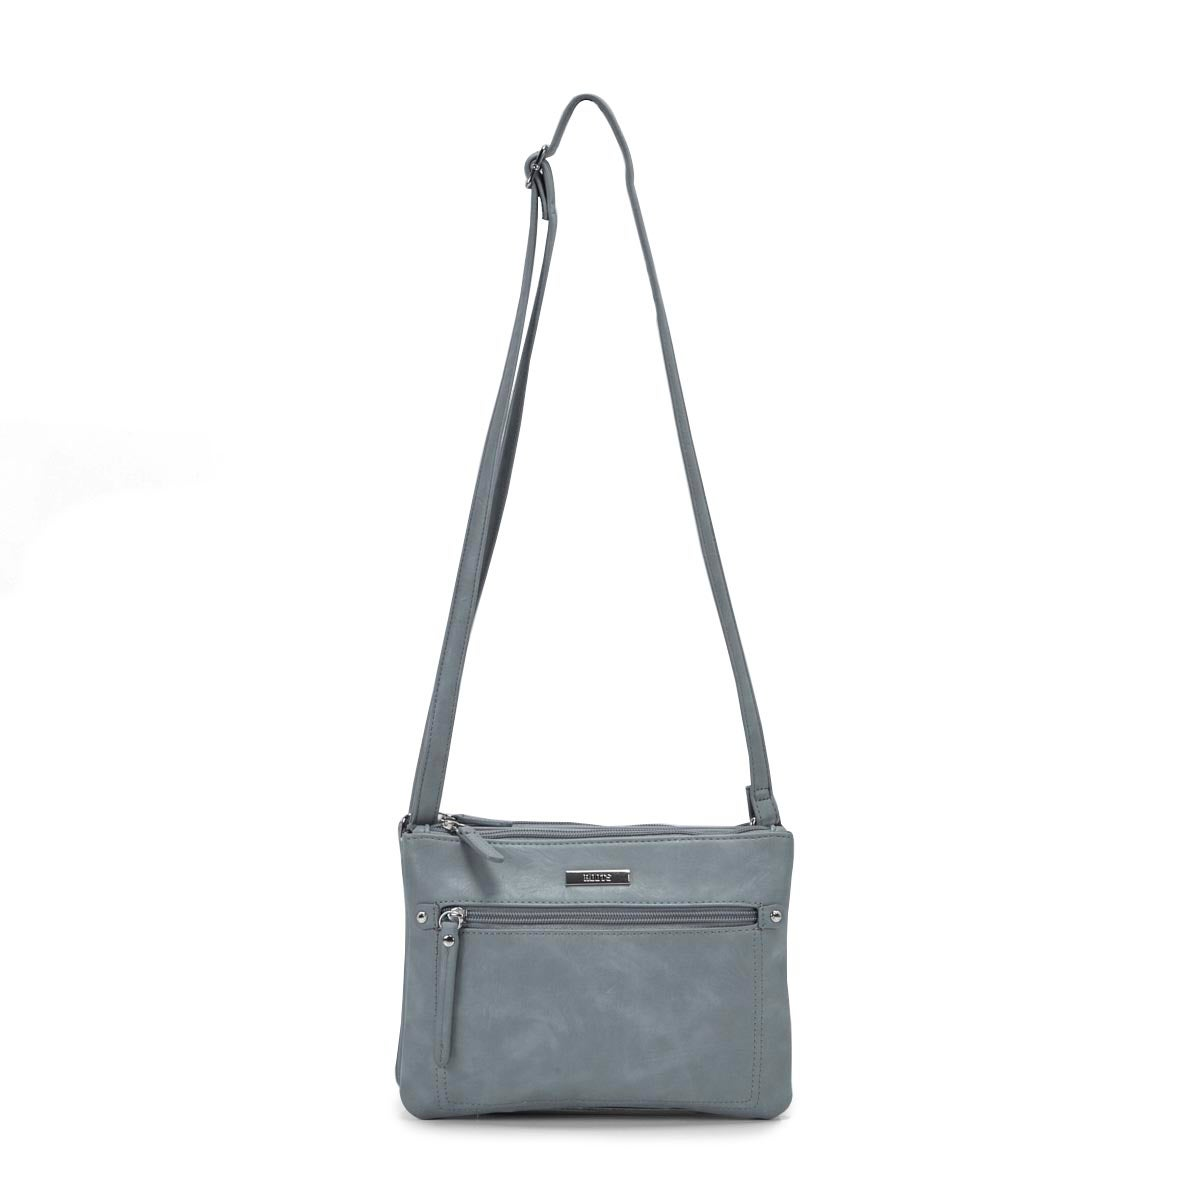 Lds Roots73 lt blu 2 cmptmnt crossbody